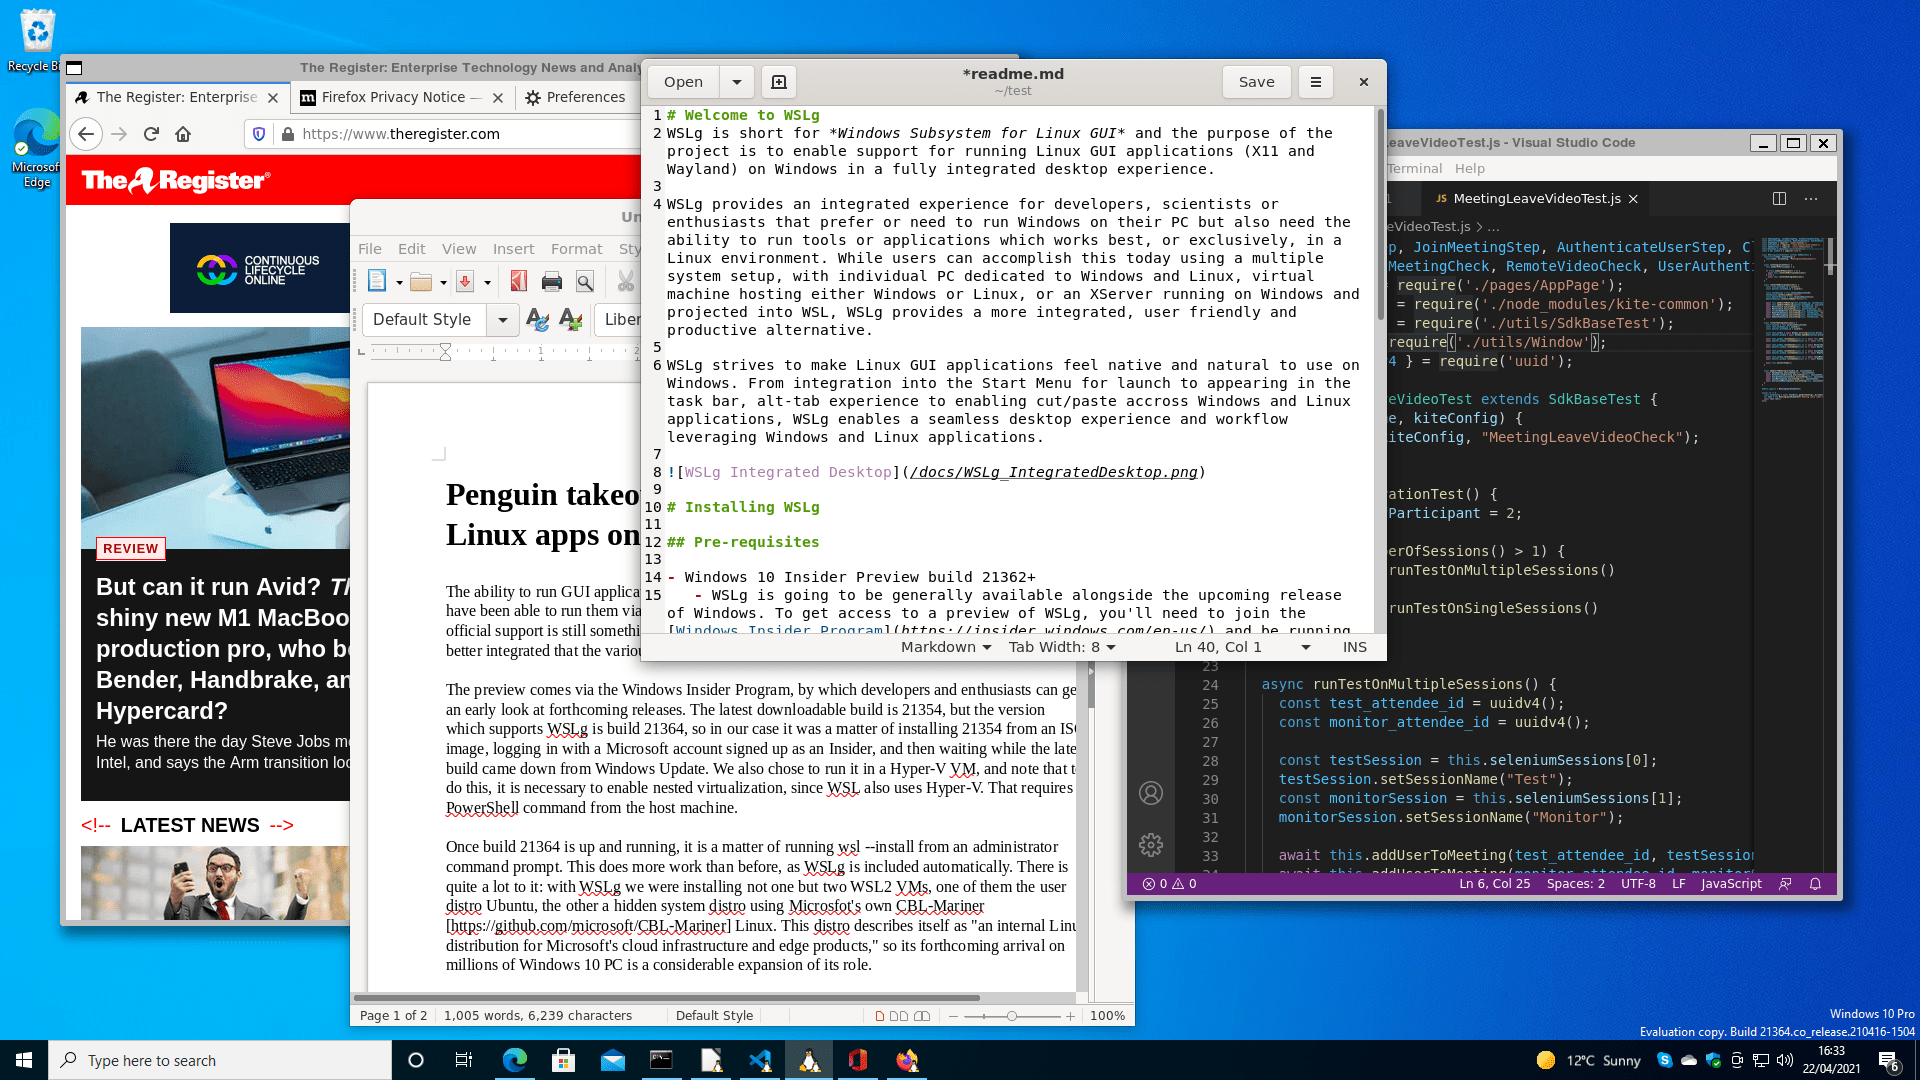 Linux applications running on Windows: Firefox, LibreOffice, Gedit and VS Code